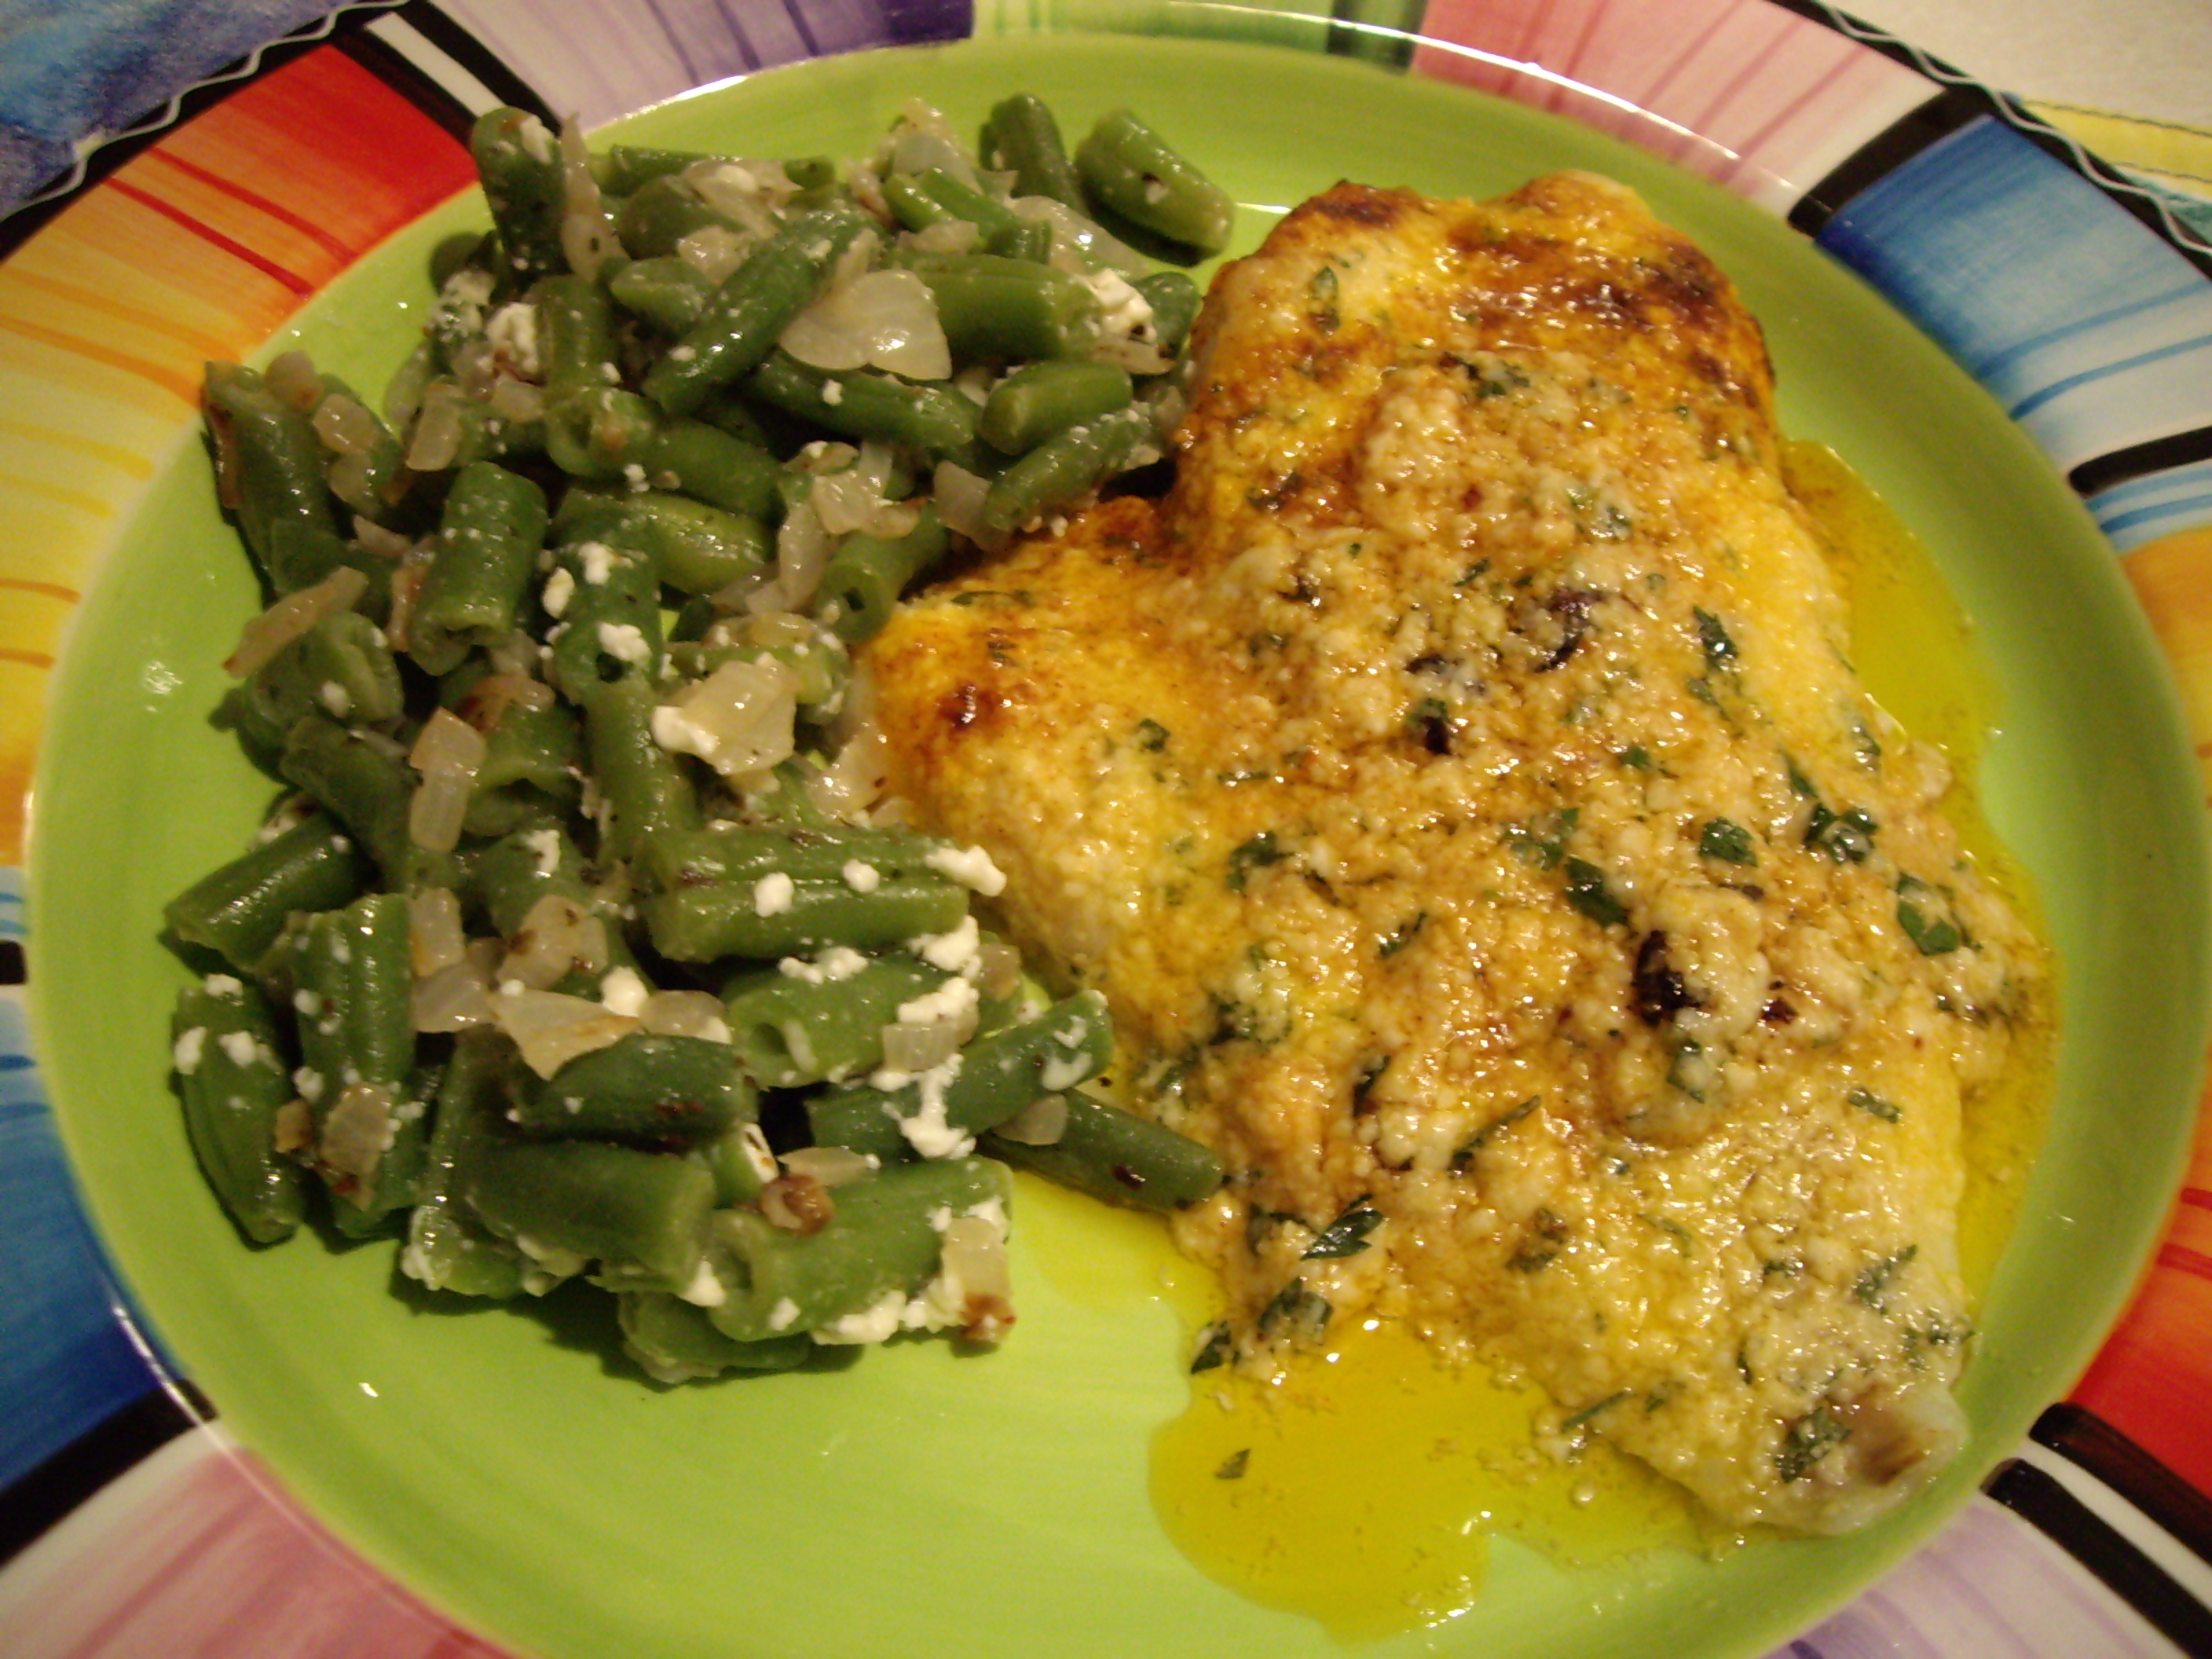 Cool Your Delicious It Was So Thank You To Food Always A Good Thing After A Long Orange Roughy Cooking At Orange Roughy Recipe Lemon Pepper Orange Roughy Recipe Fried Veryeasy nice food Orange Roughy Recipe